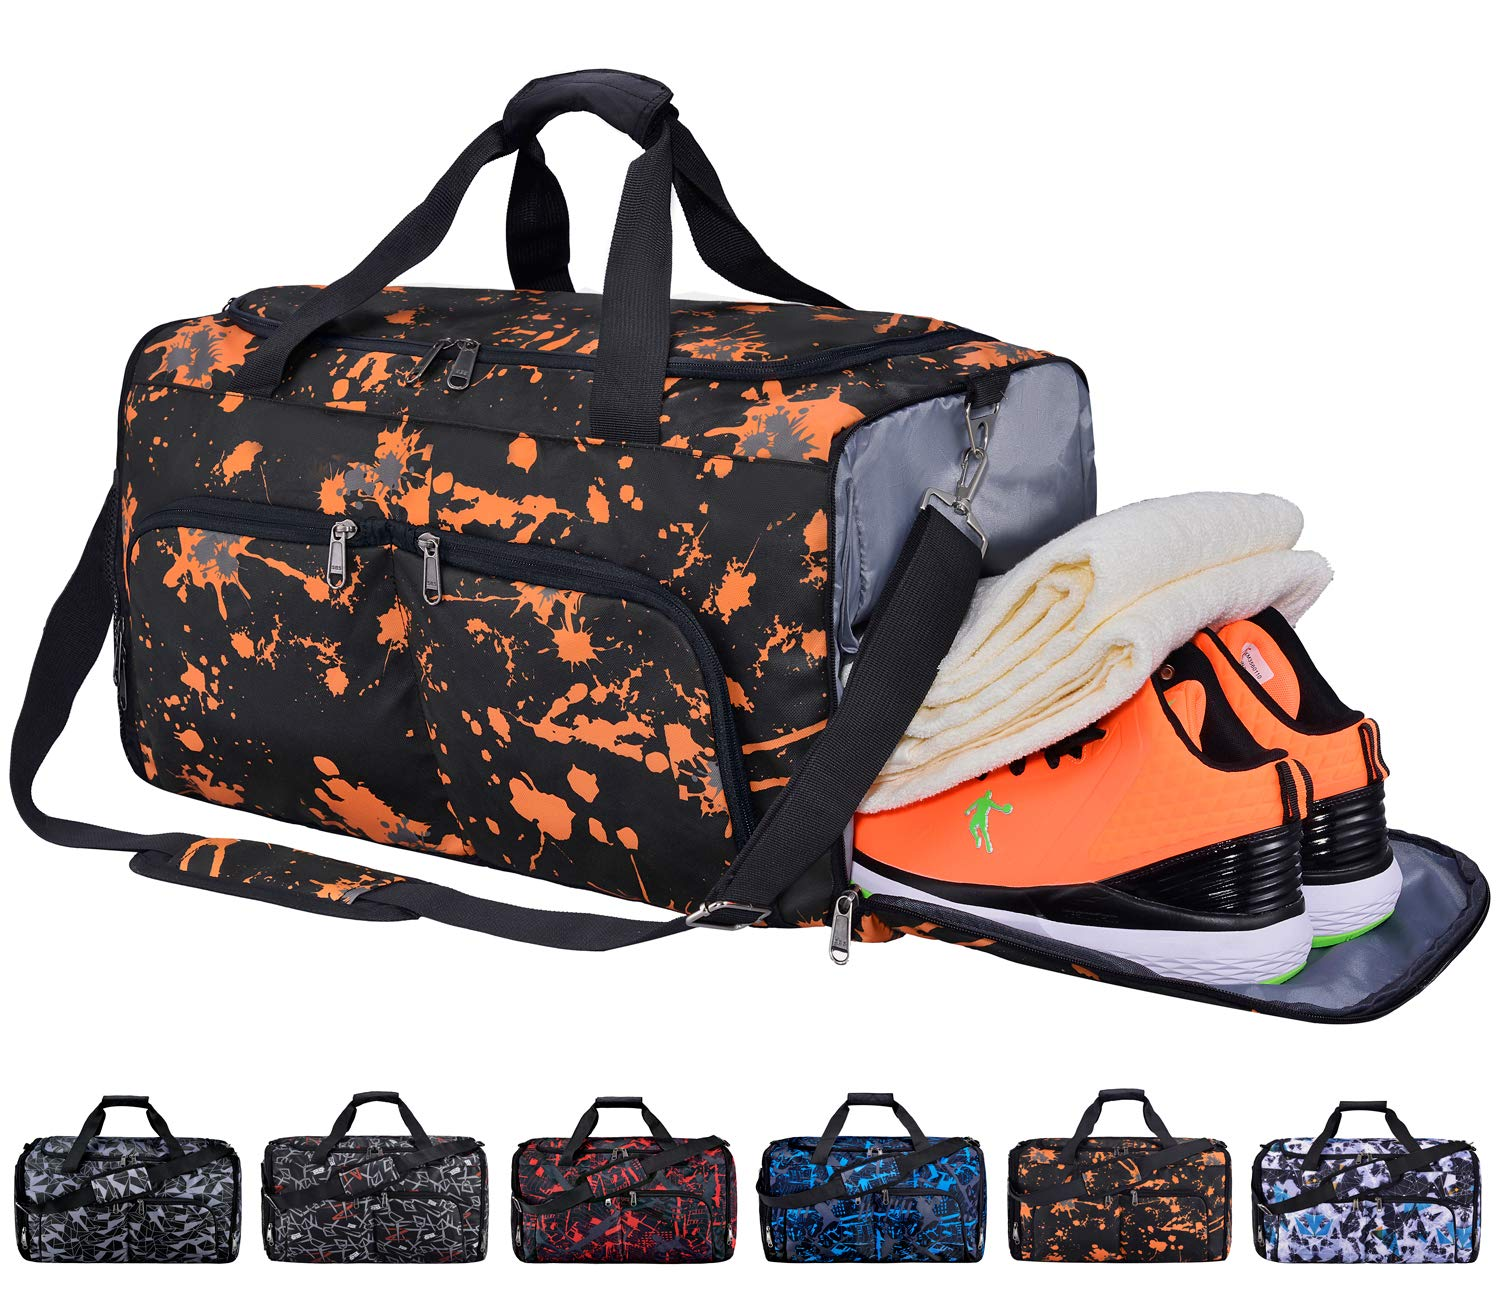 new arrivals 15ba9 0517e FANCYOUT Sports Gym Bag with Shoes Compartment   Wet Pocket, Travel Duffel  Bag for Men